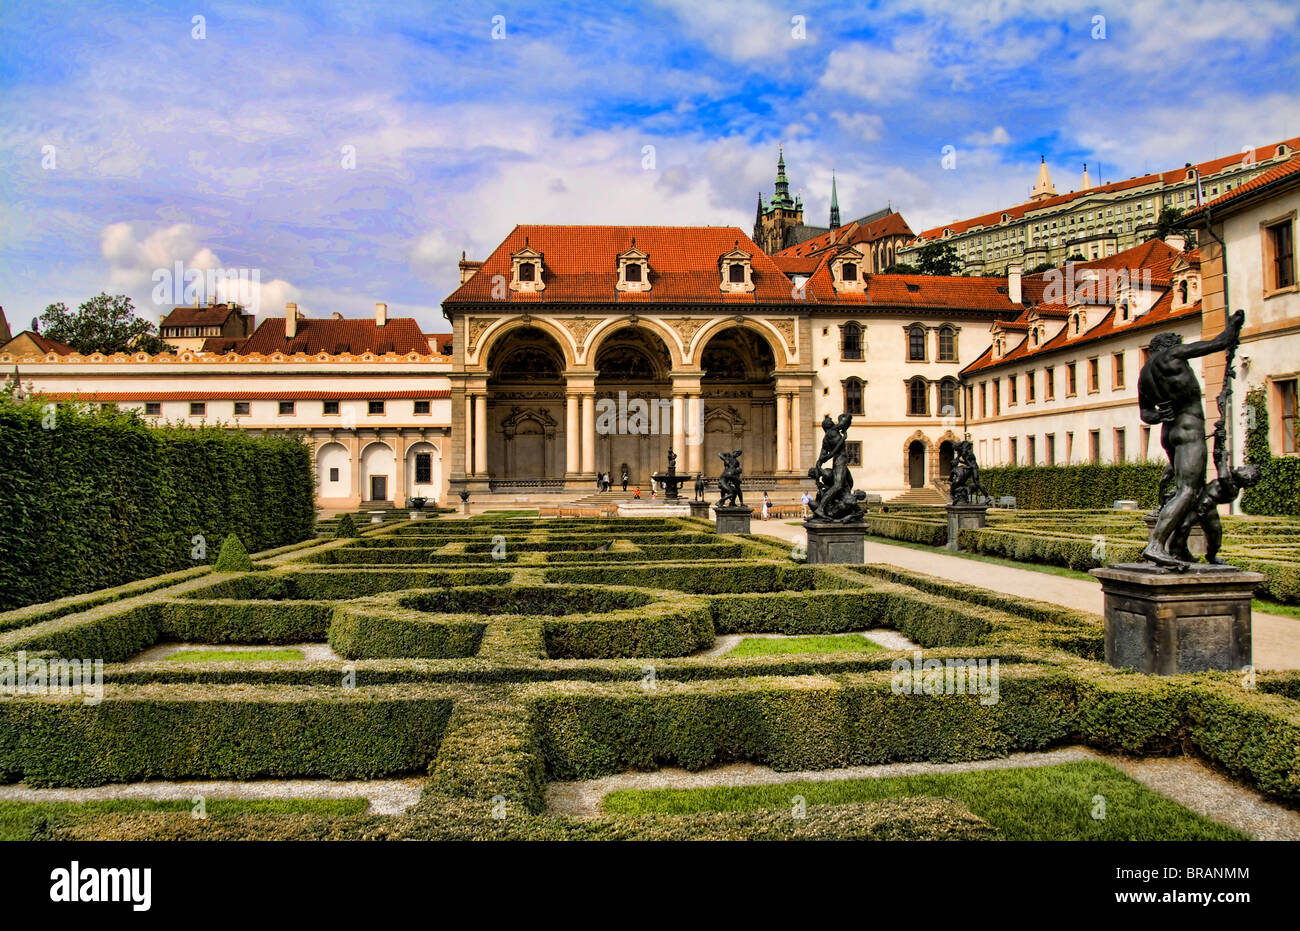 Wallenstein Gardens in the beautiful famous Old Town district of ...